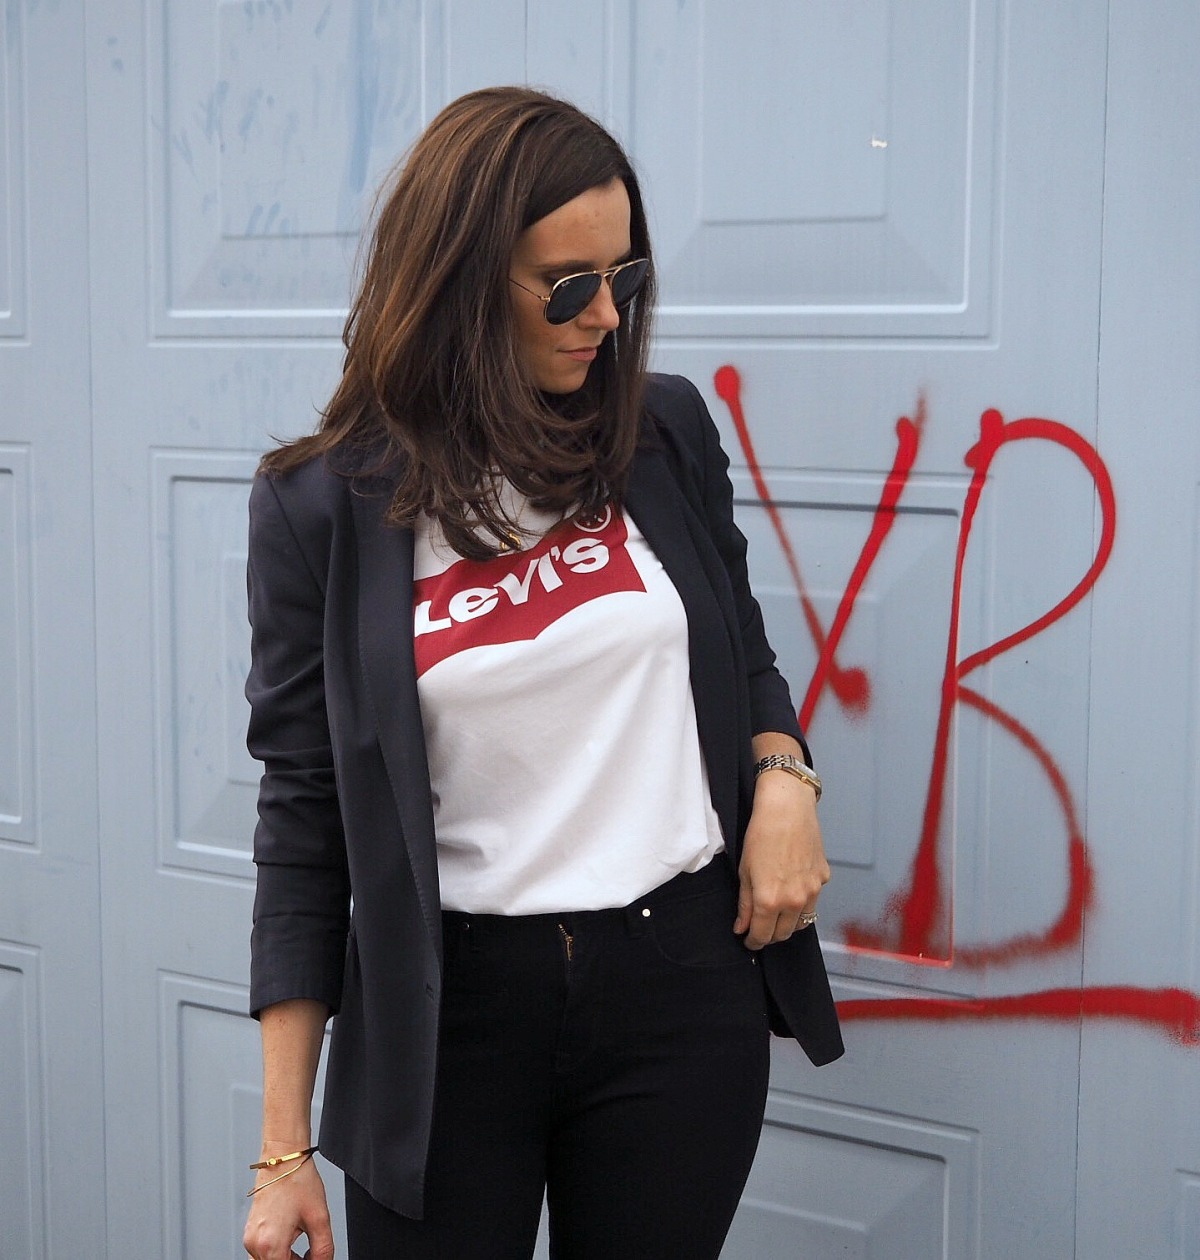 Wardrobe Picks – Levi's Tee & Blazer